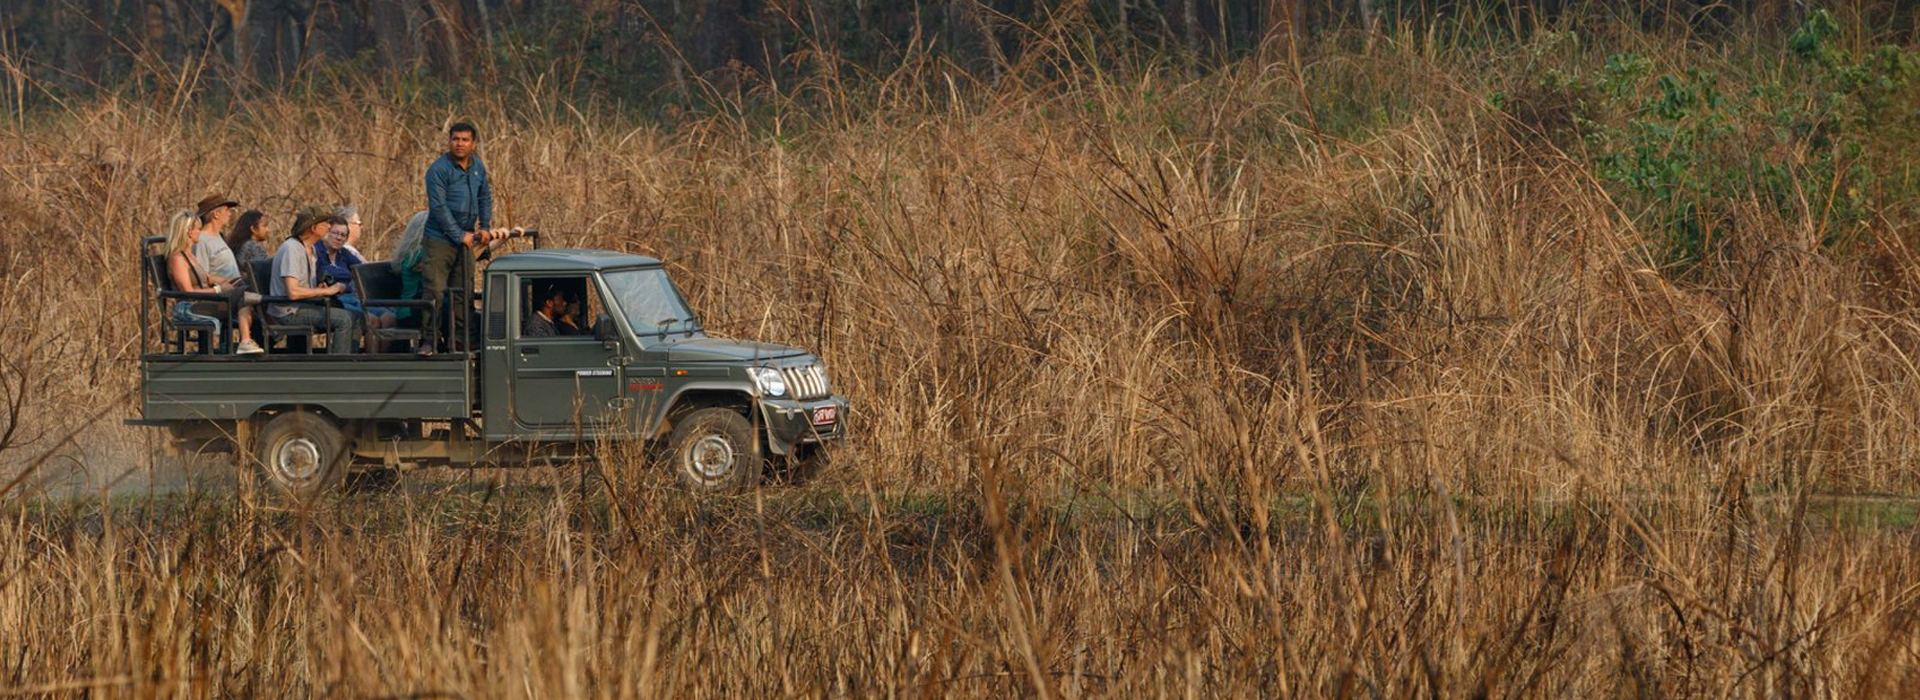 Chitwan National Park (4 days 3 nights package)